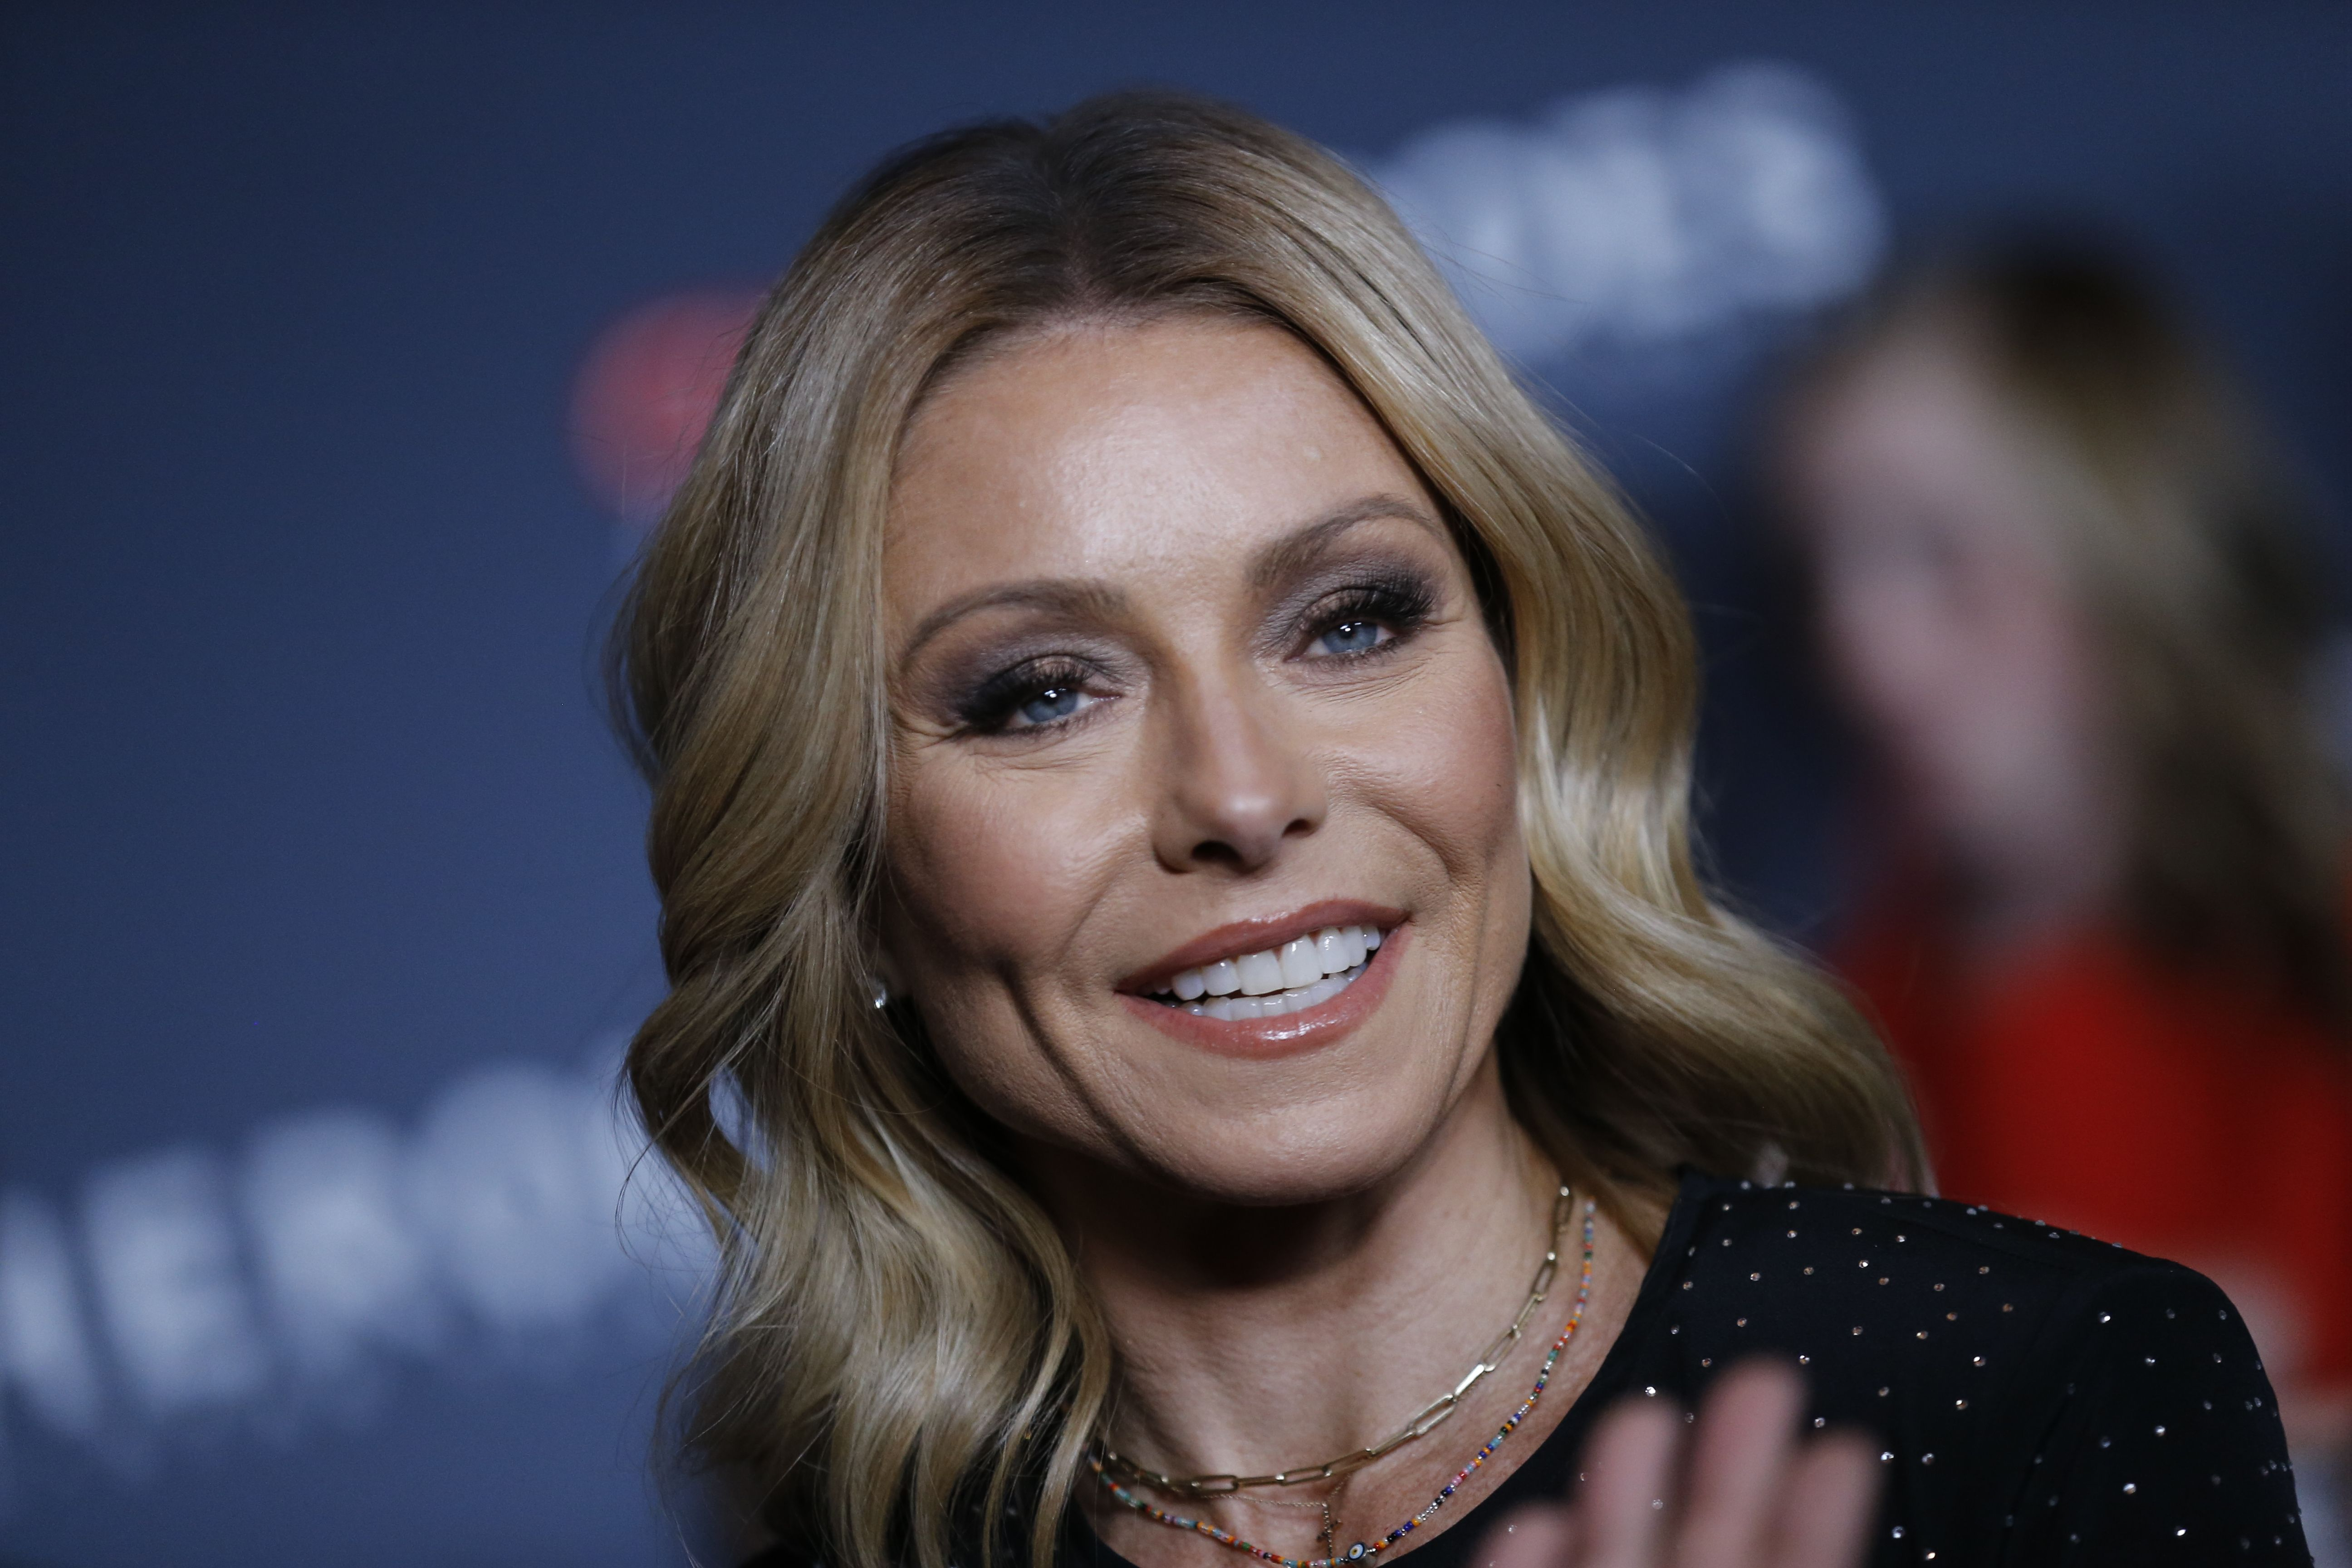 What Is Kelly Ripa's Net Worth? Here's How the Talk Show Host Made Her Fortune